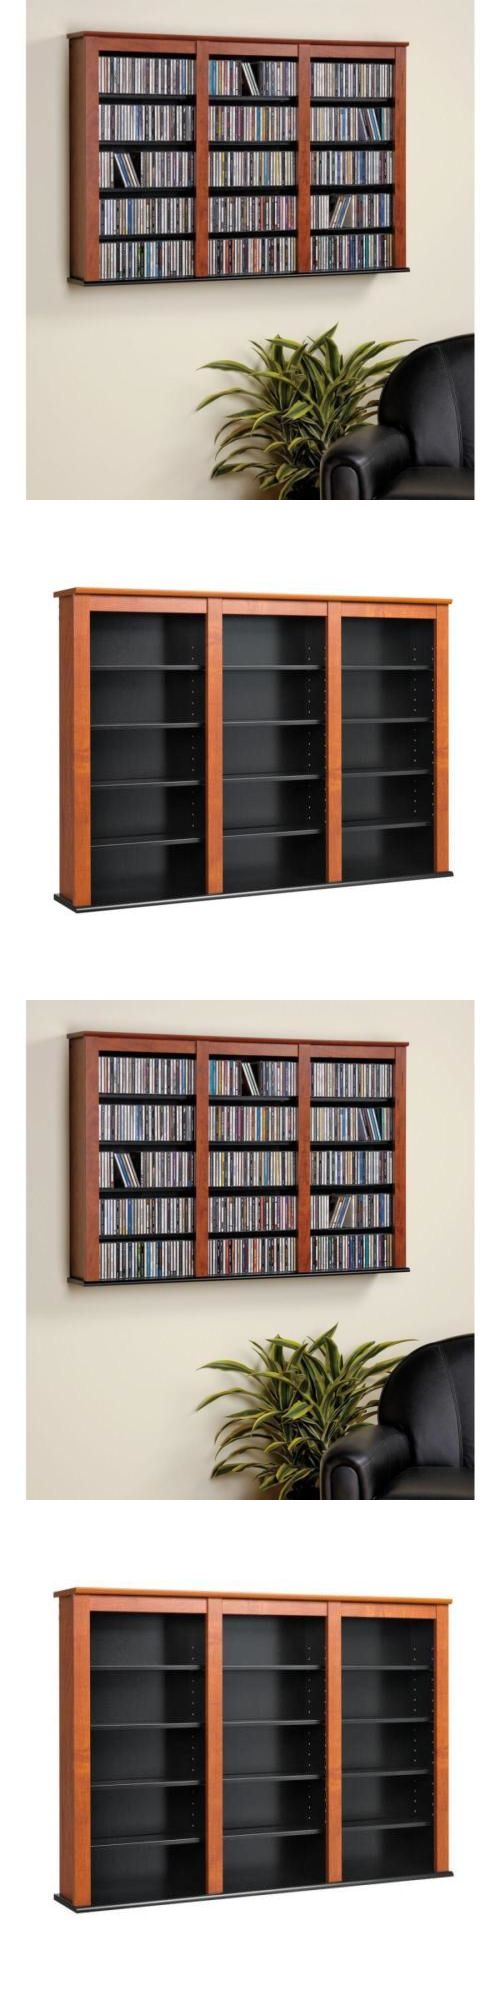 best 25 buy back books ideas that you will like on pinterest media cases and storage floating wall cabinet storage paper back books media dvd games shelf